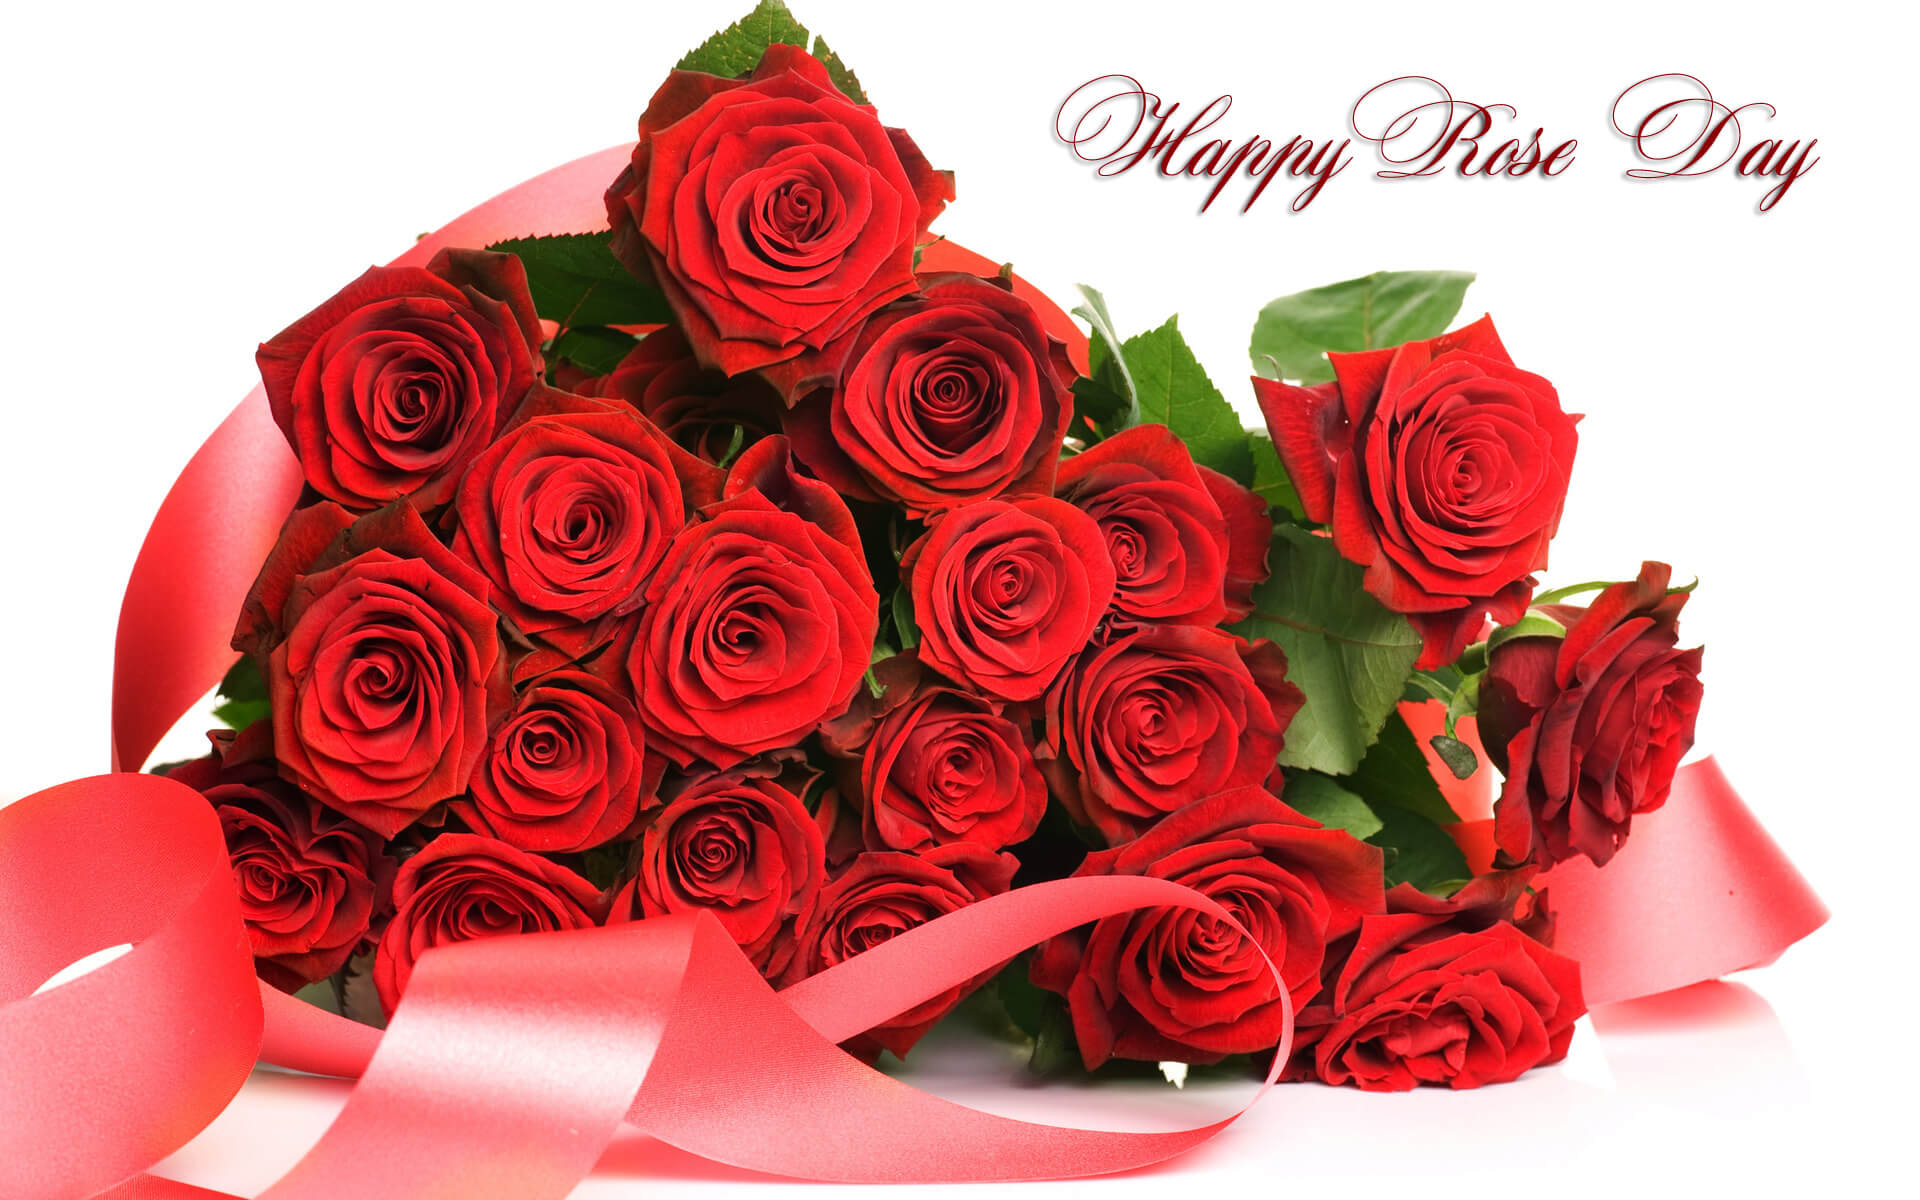 happy rose day bouqet graphic image desktop hd wallpaper